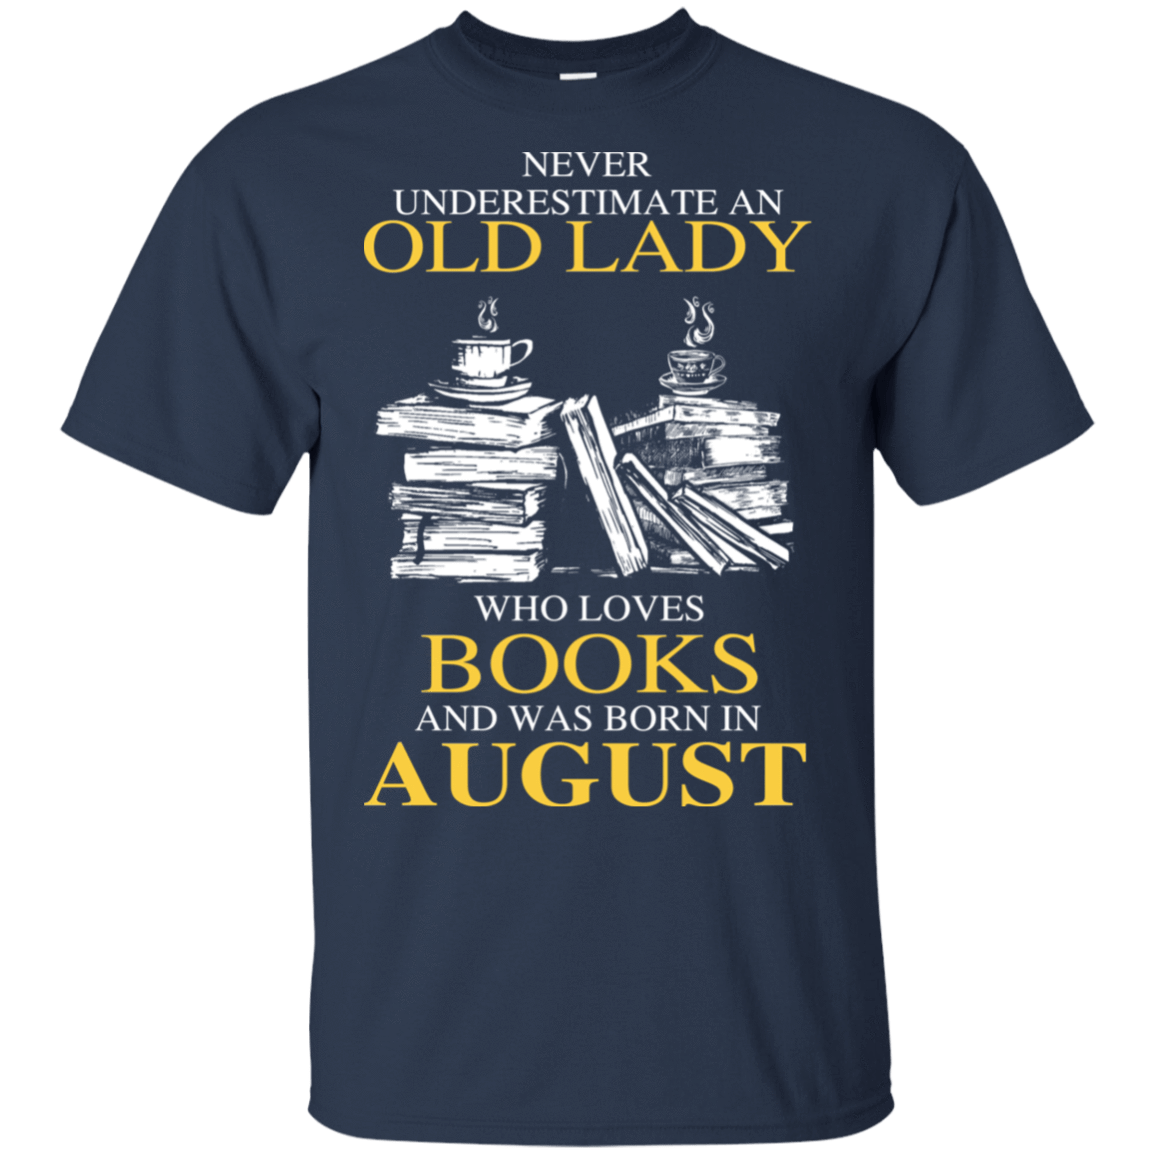 Never Underestimate An Old Lady Who Loves Books And Was Born In August T-Shirts, Hoodies 22-111-78318928-250 - Tee Ript